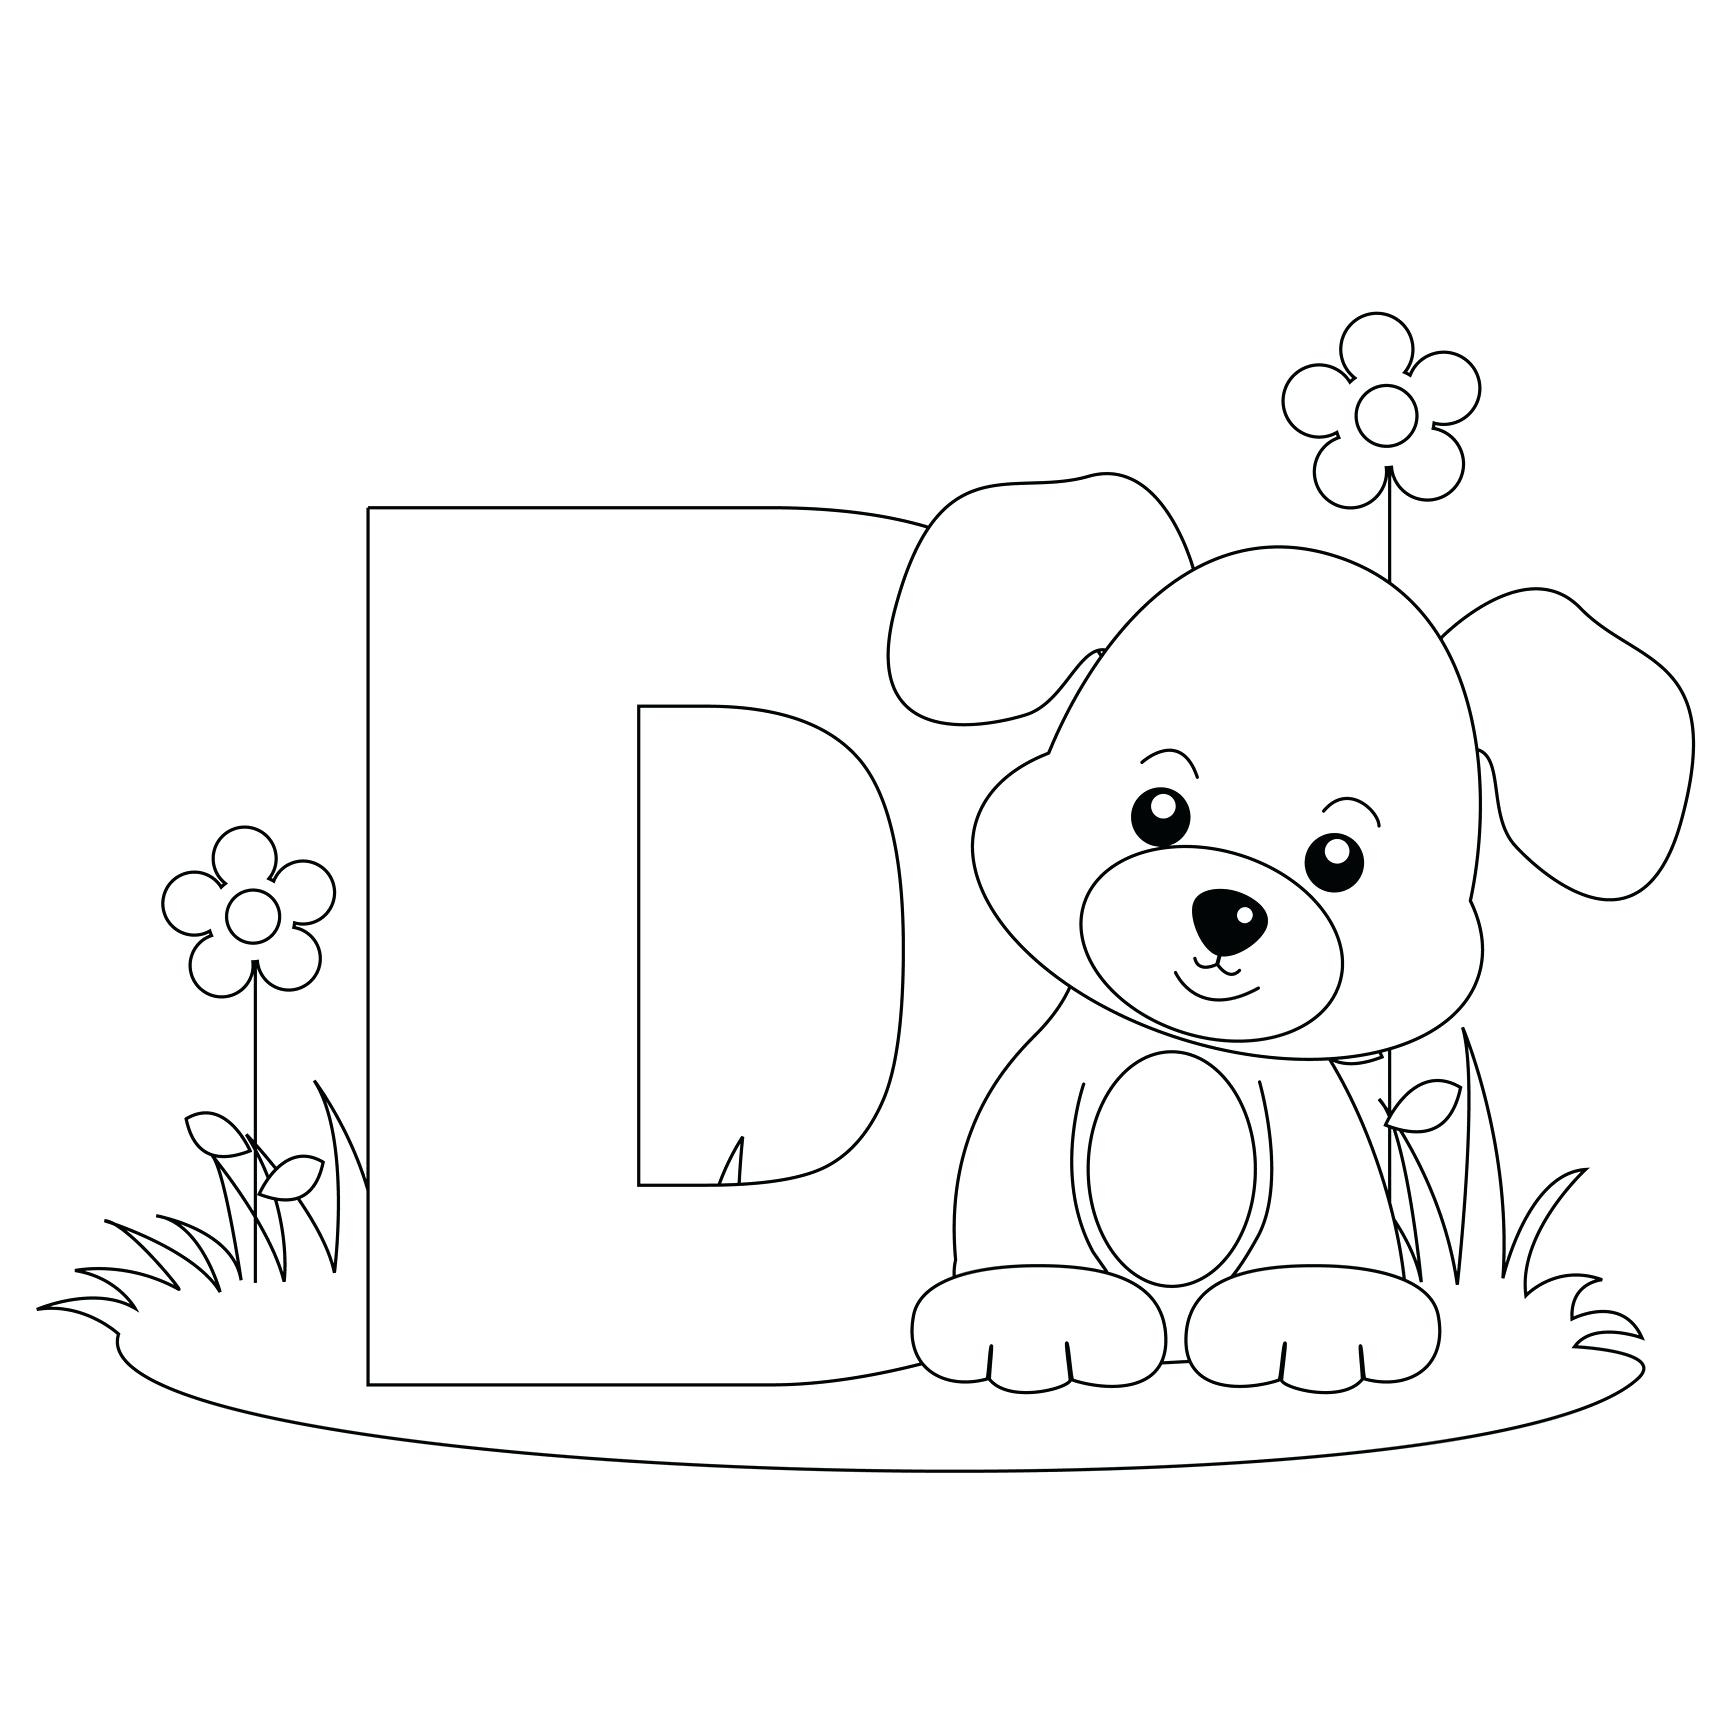 1732x1732 Letter M Coloring Pages To And Print For Free To Print